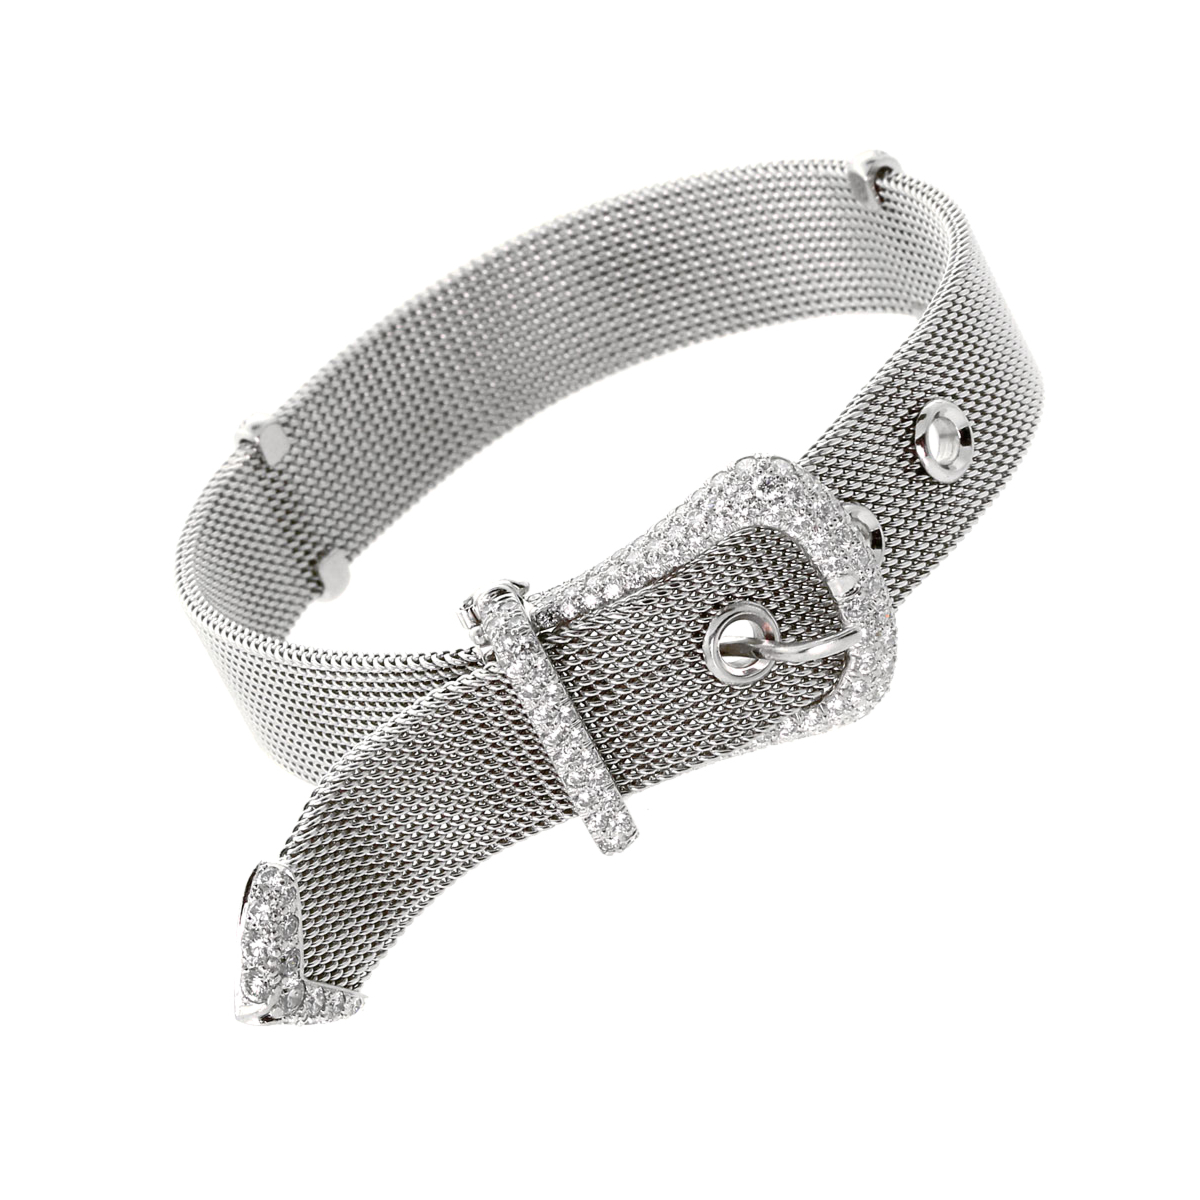 Tiffany & Co. Diamond Platinum Buckle Bracelet